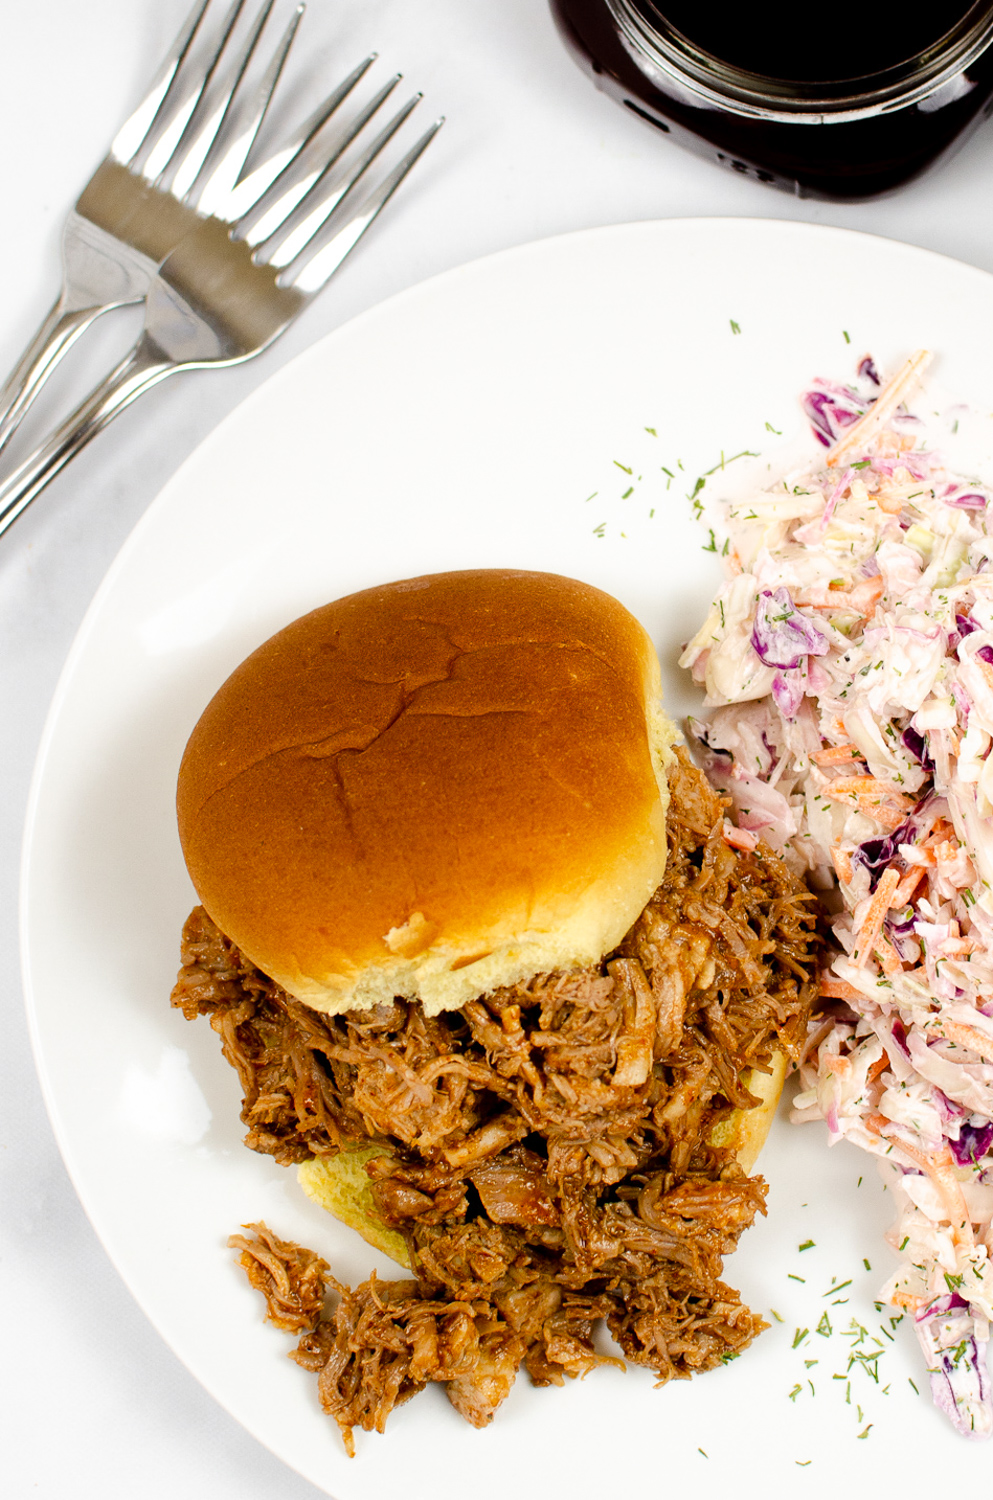 BBQ pulled pork sandwich with a side of creamy coleslaw